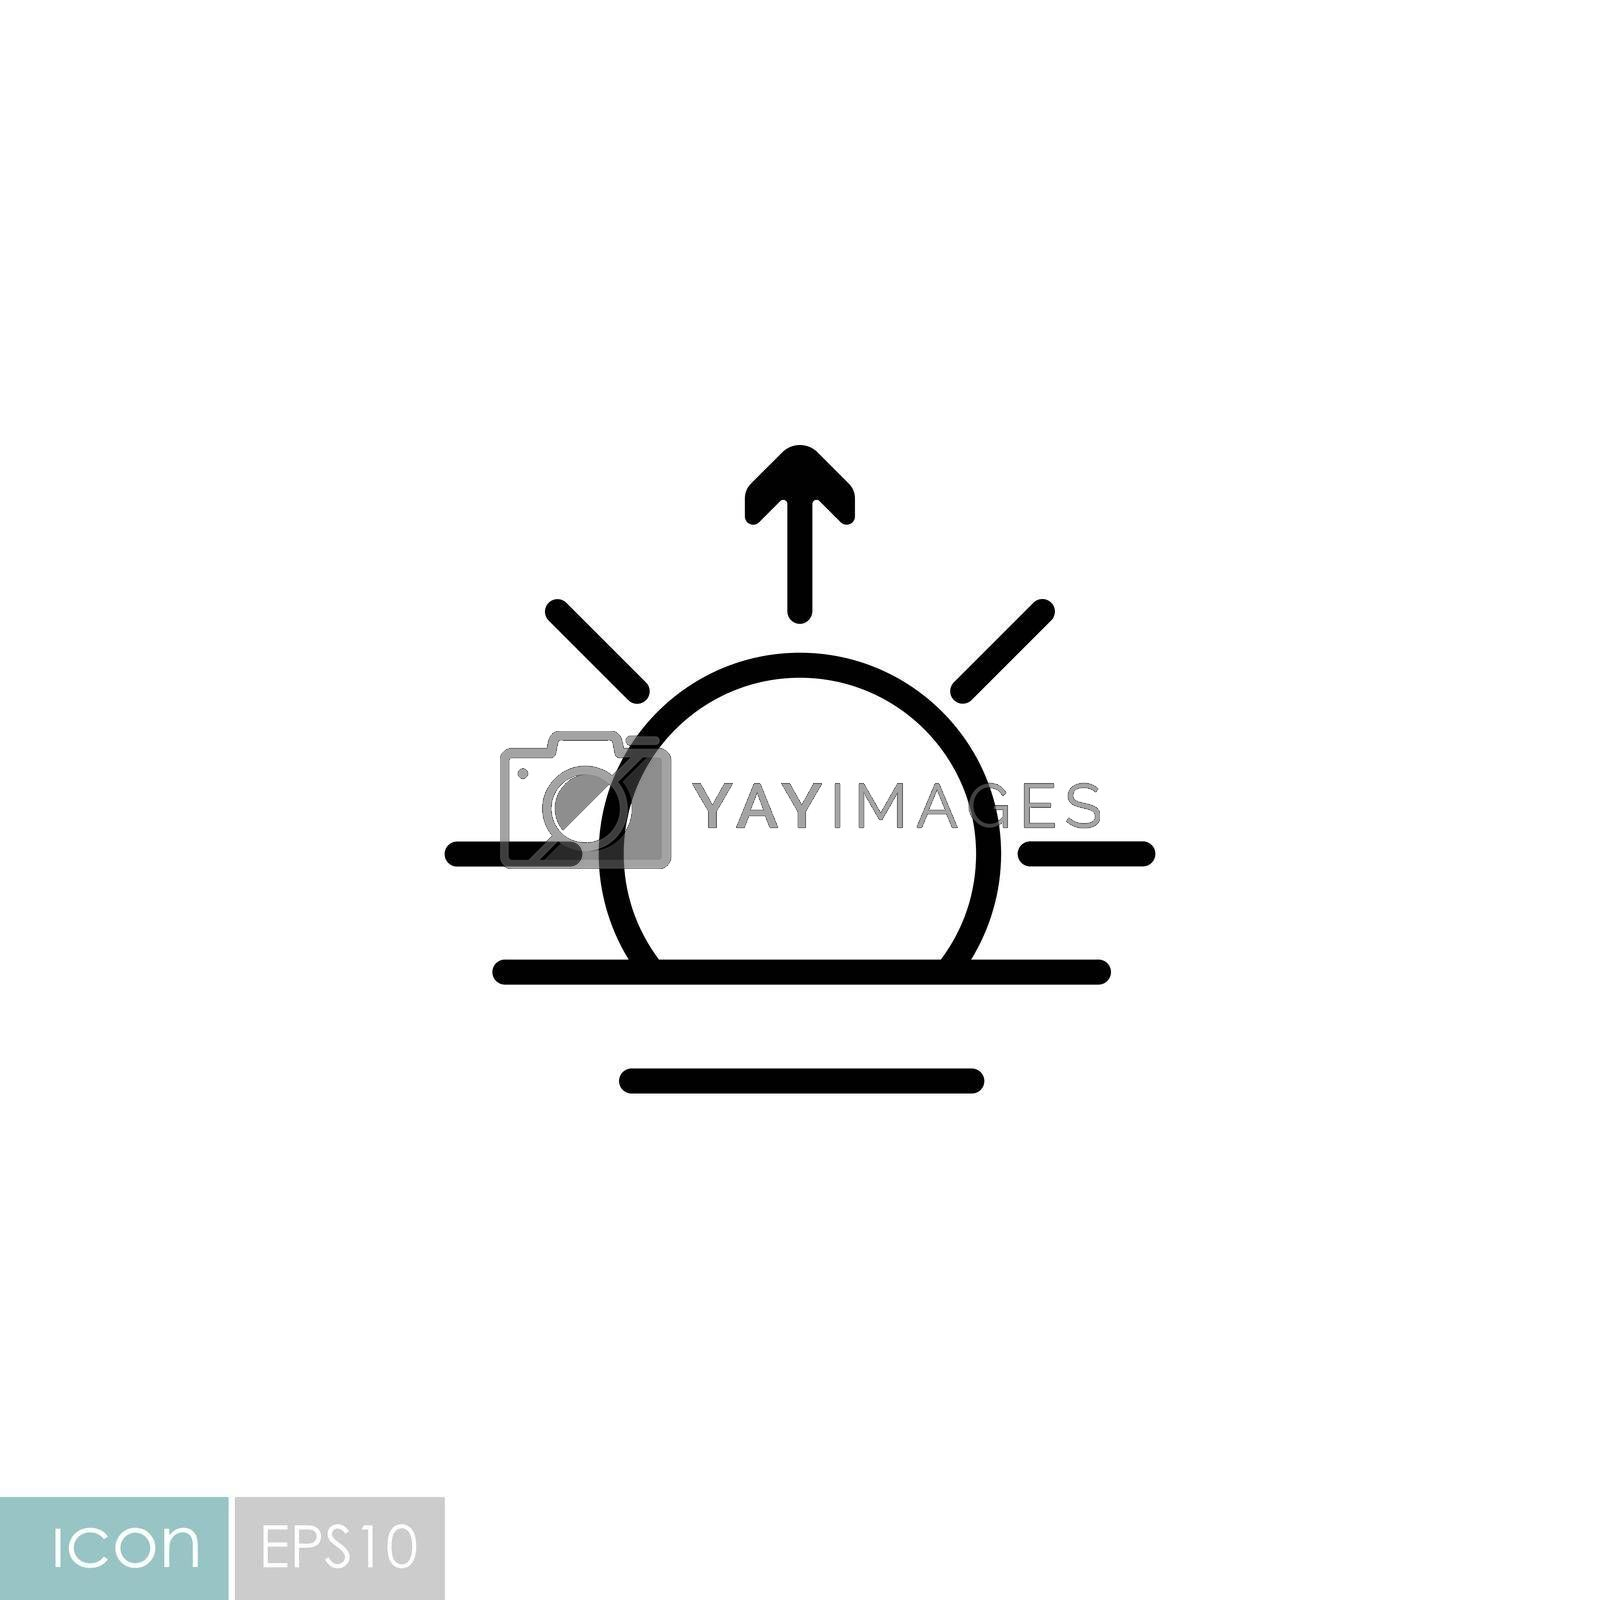 Sunrise vector icon. Meteorology sign. Graph symbol for travel, tourism and weather web site and apps design, logo, app, UI